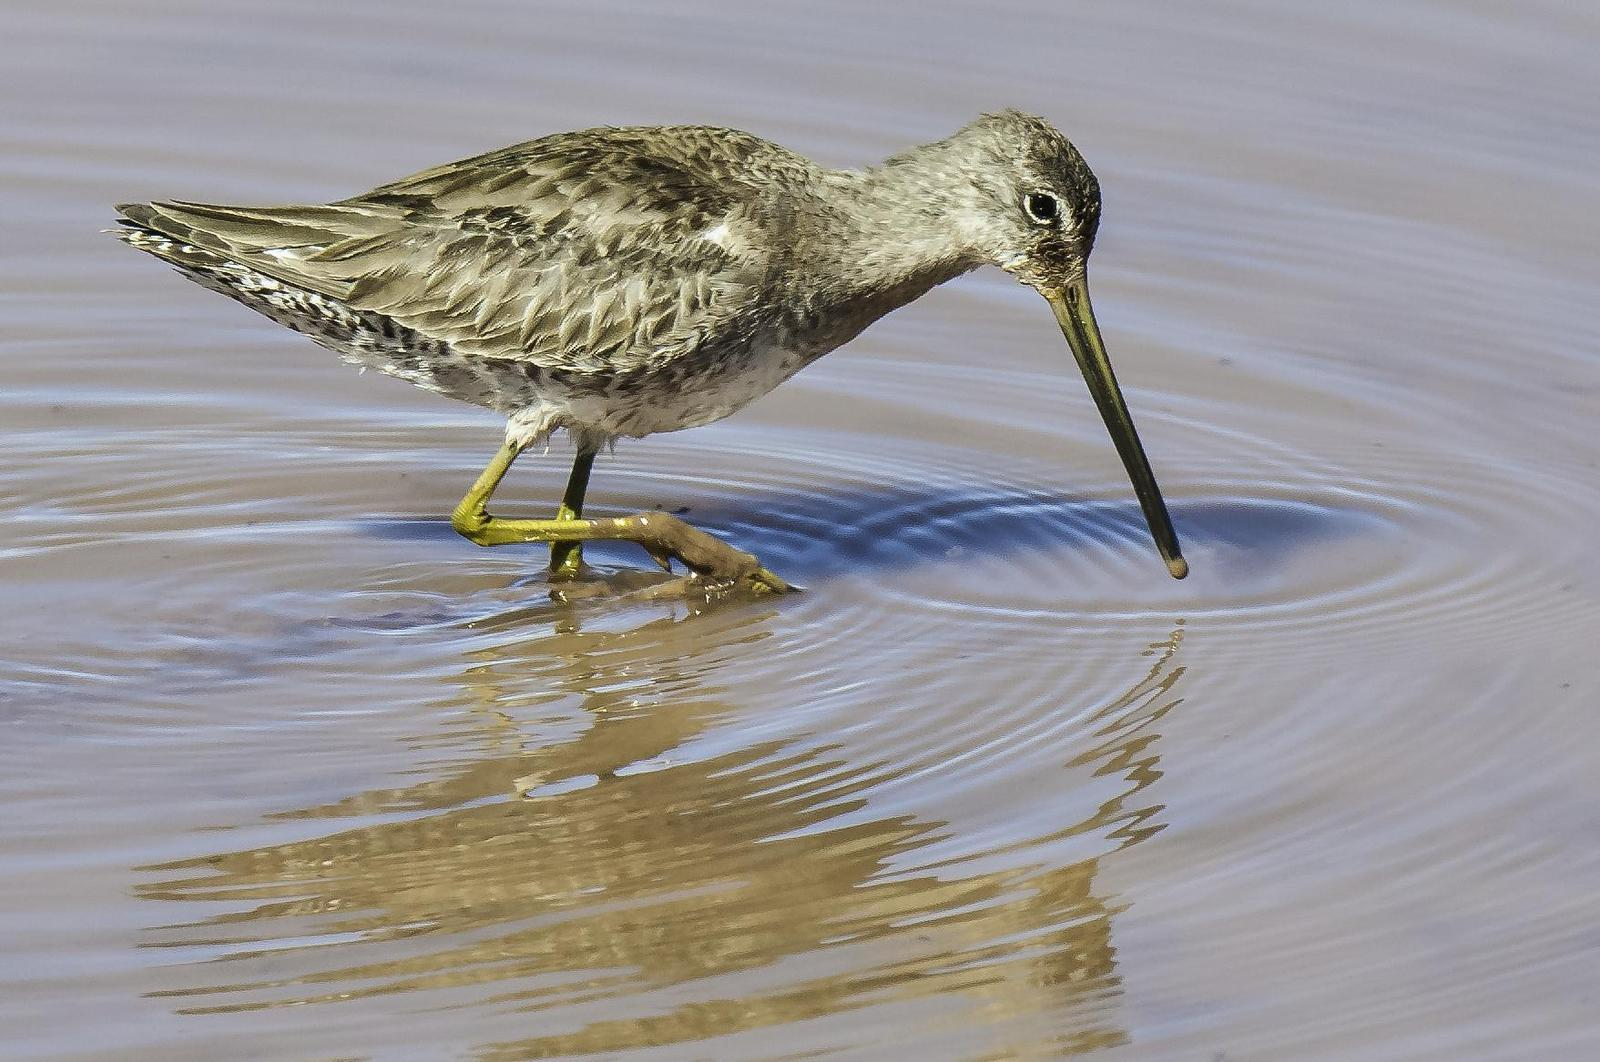 Long-billed Dowitcher Photo by Mason Rose